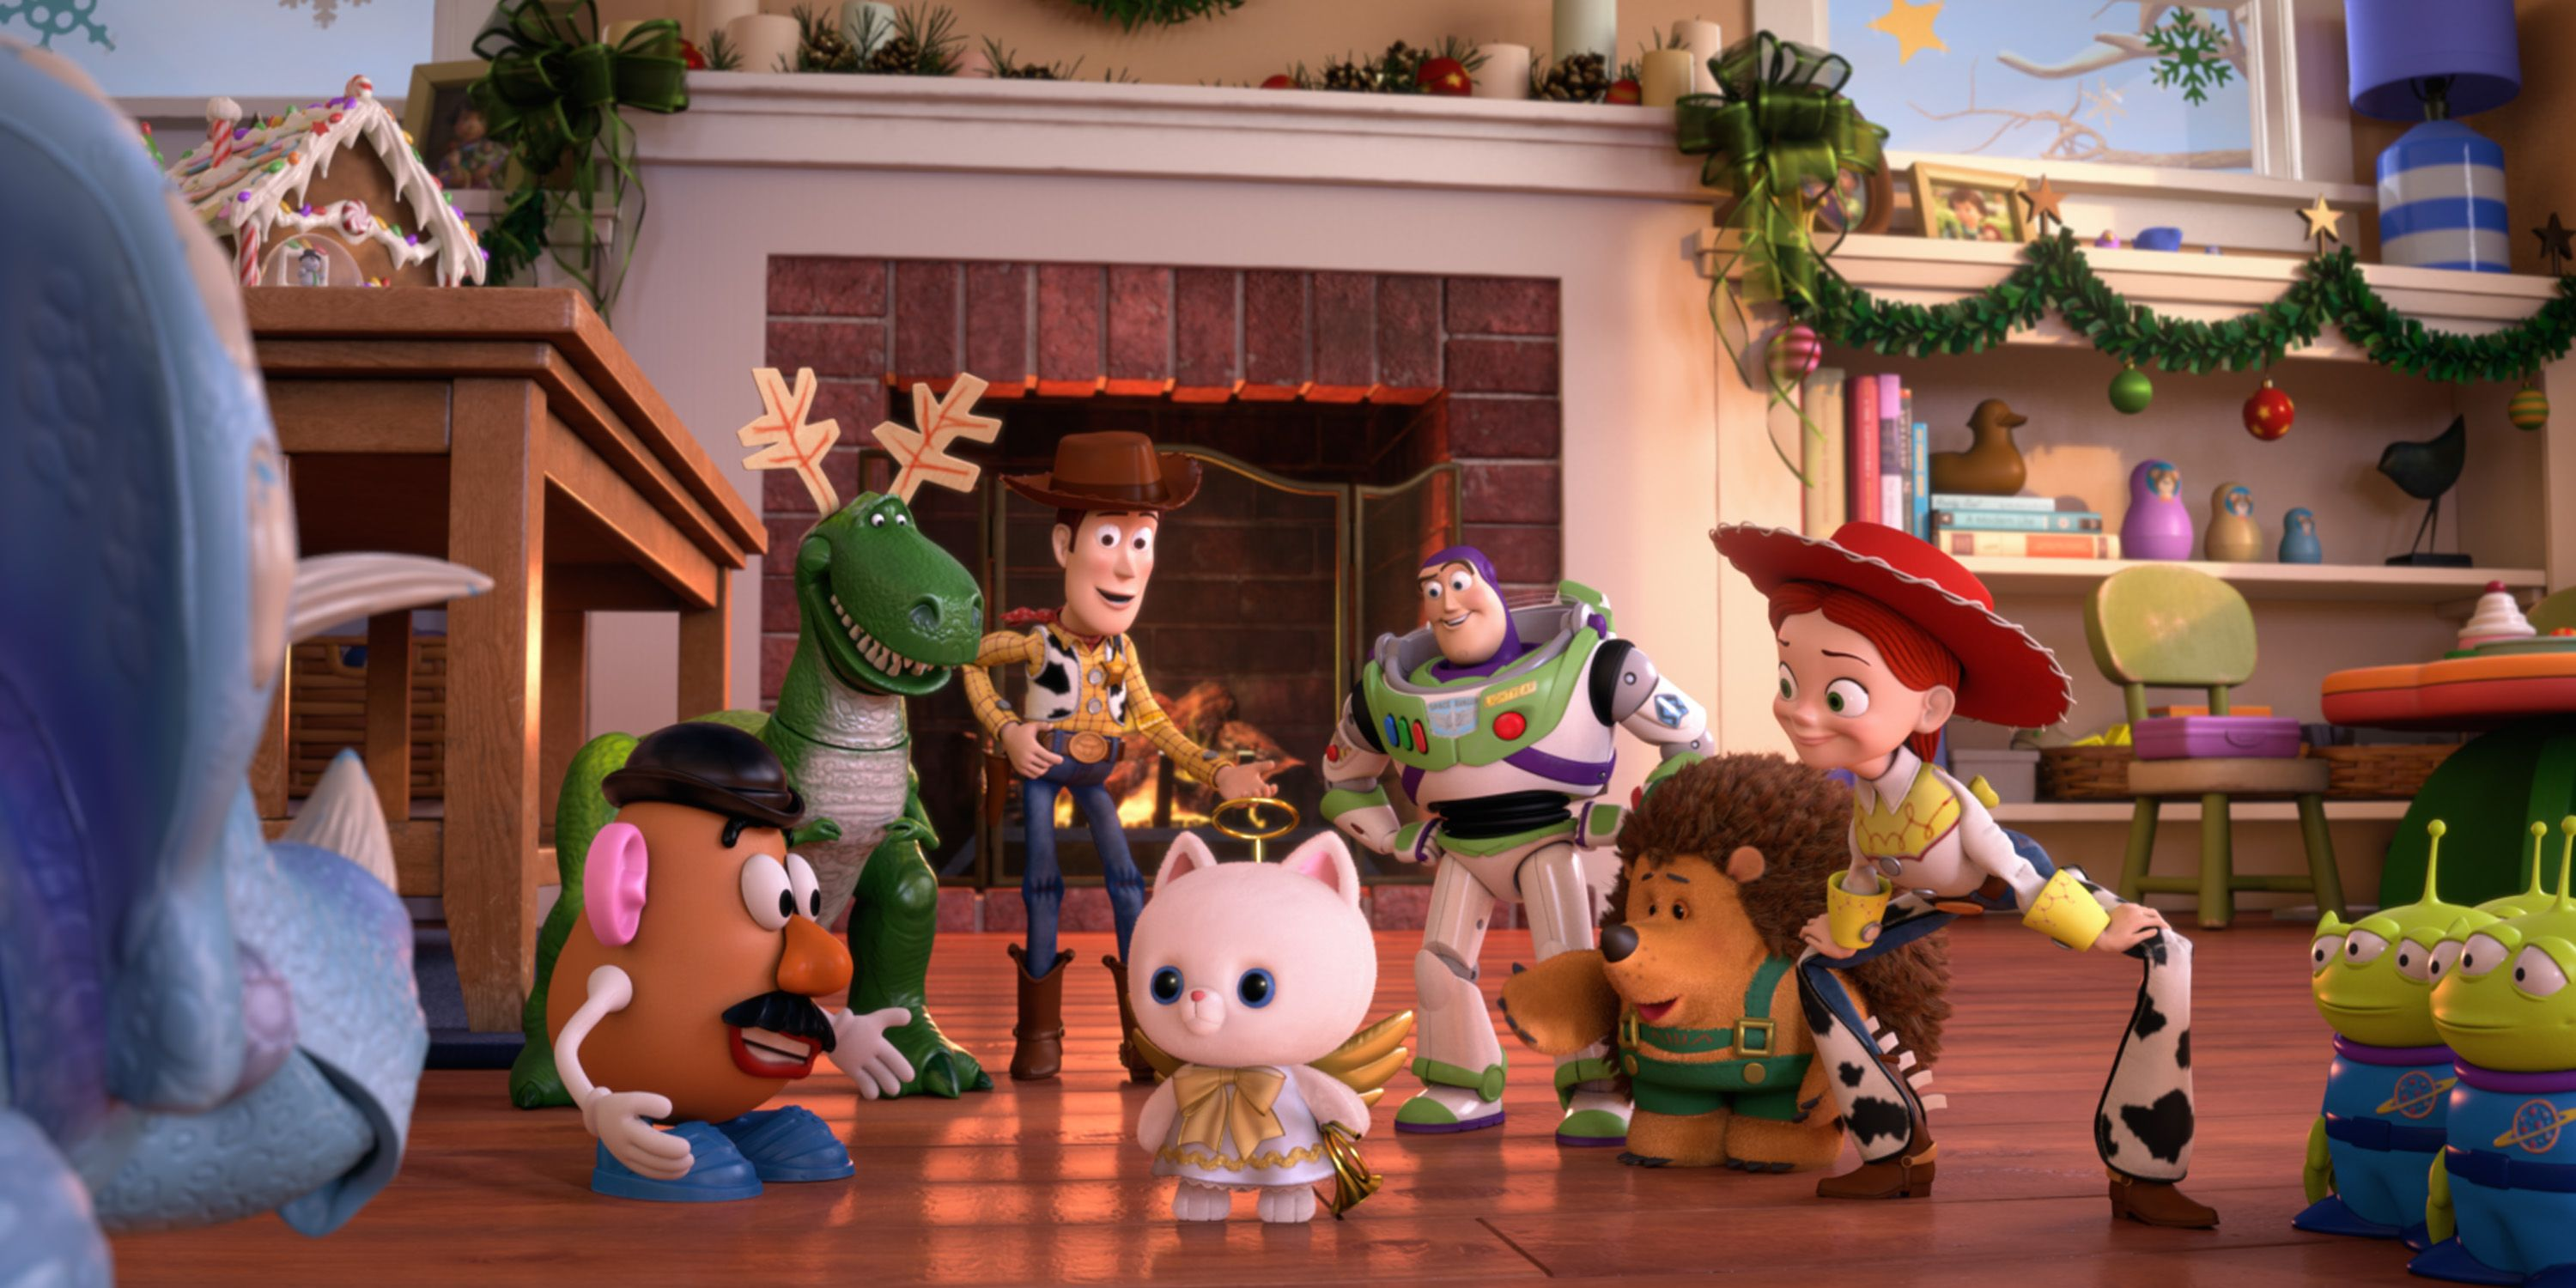 Disney+ Streaming Will Have Pixar Films